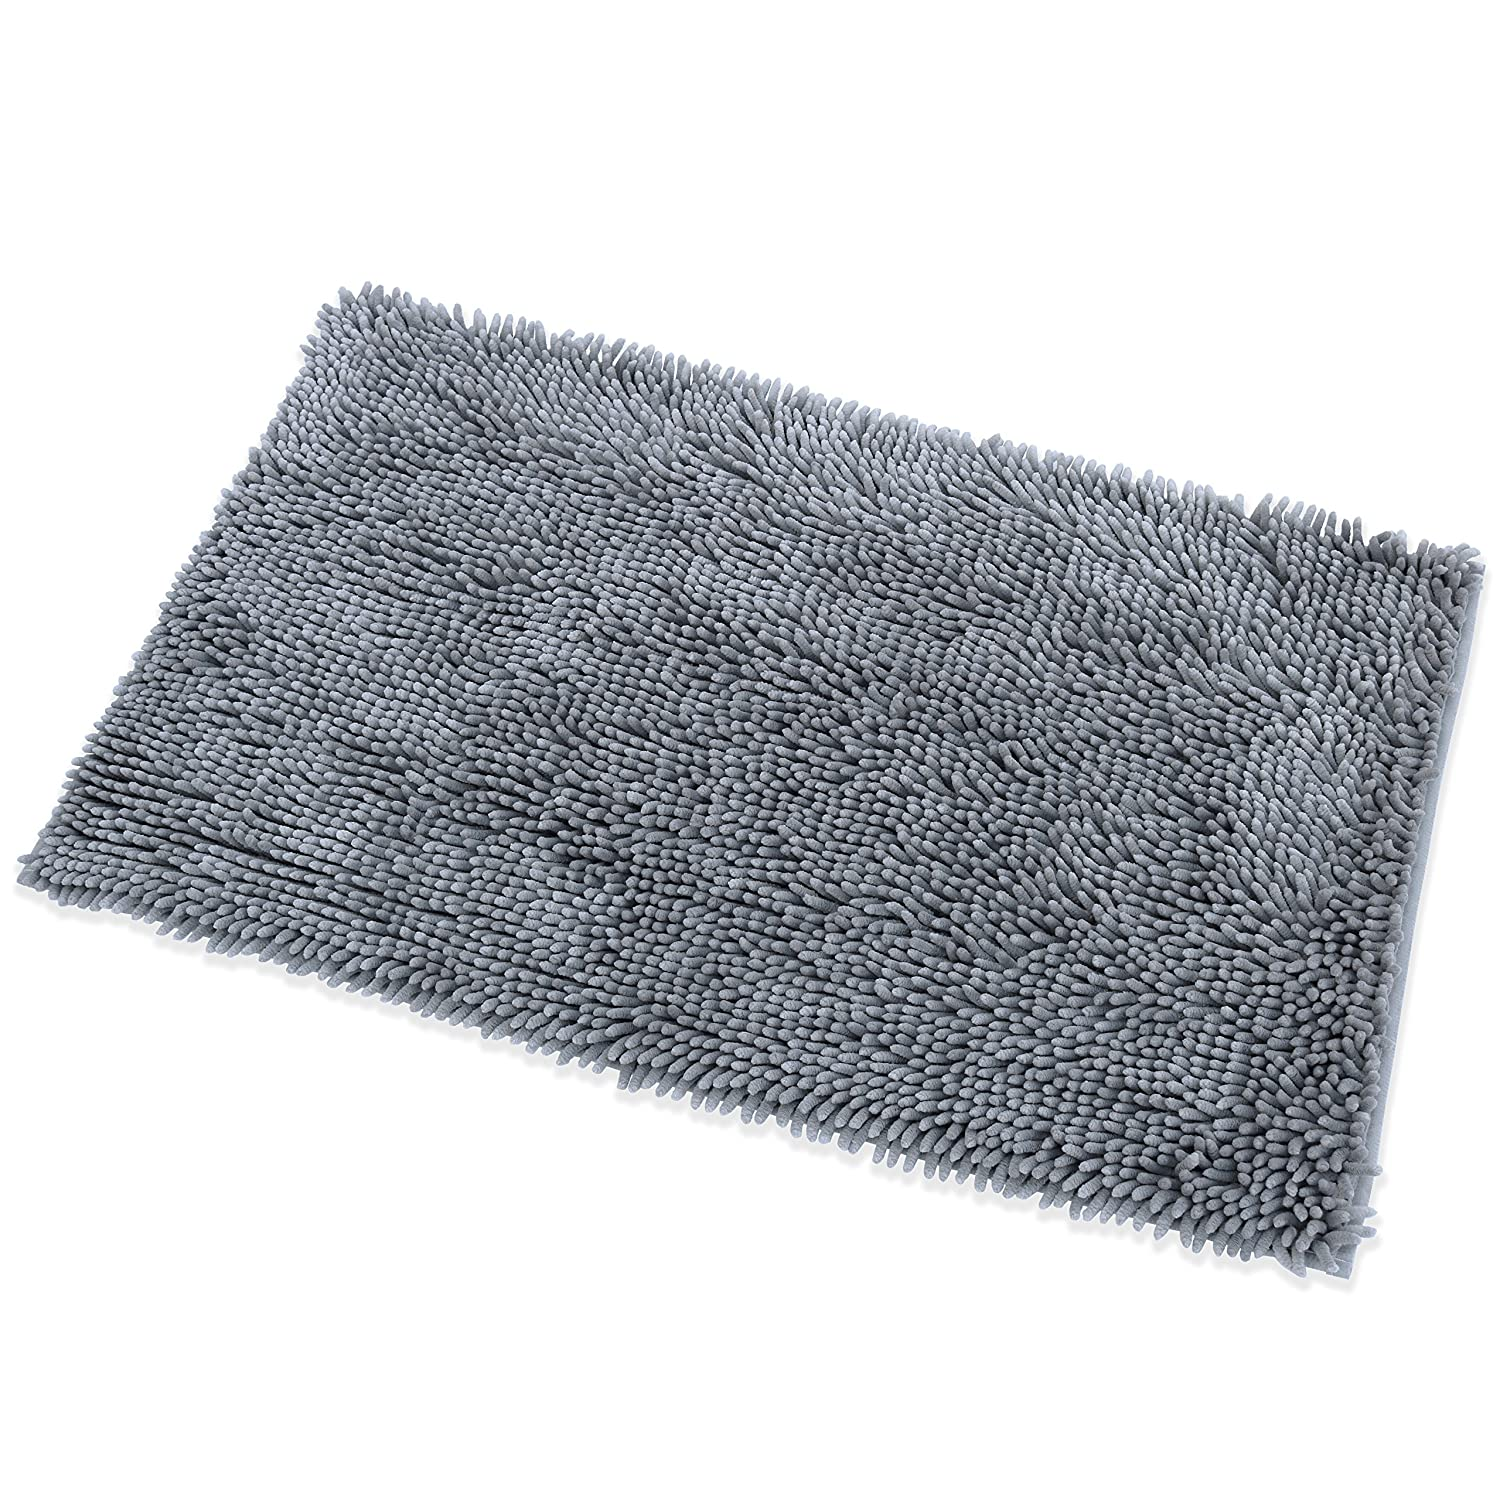 Bathroom Floor Mats Rugs My Web Value